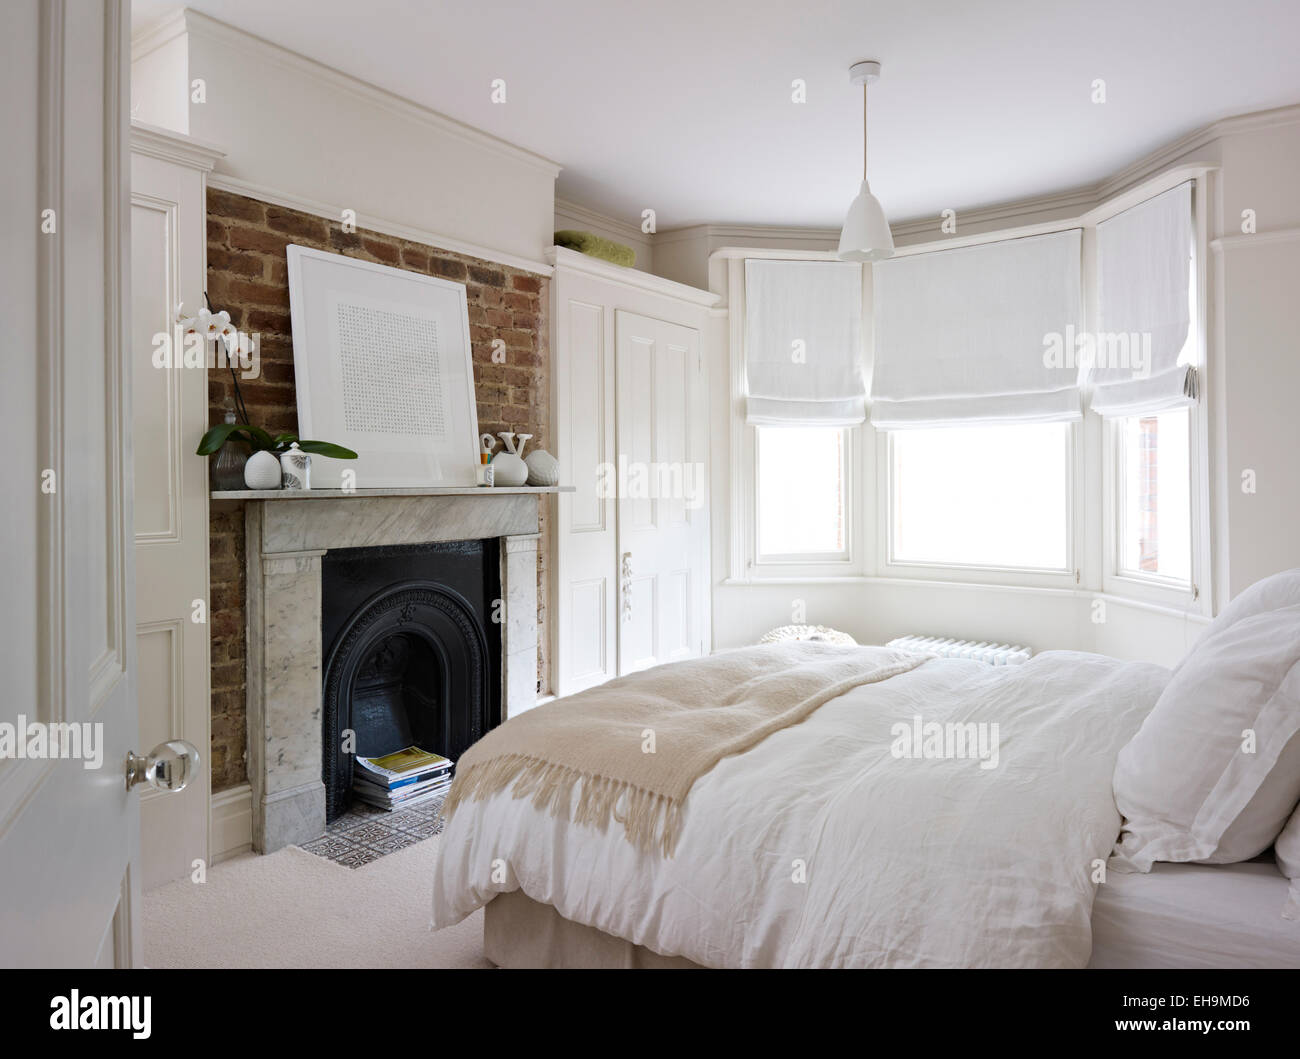 bedroom with bed fireplace and bay window with roman blinds stock